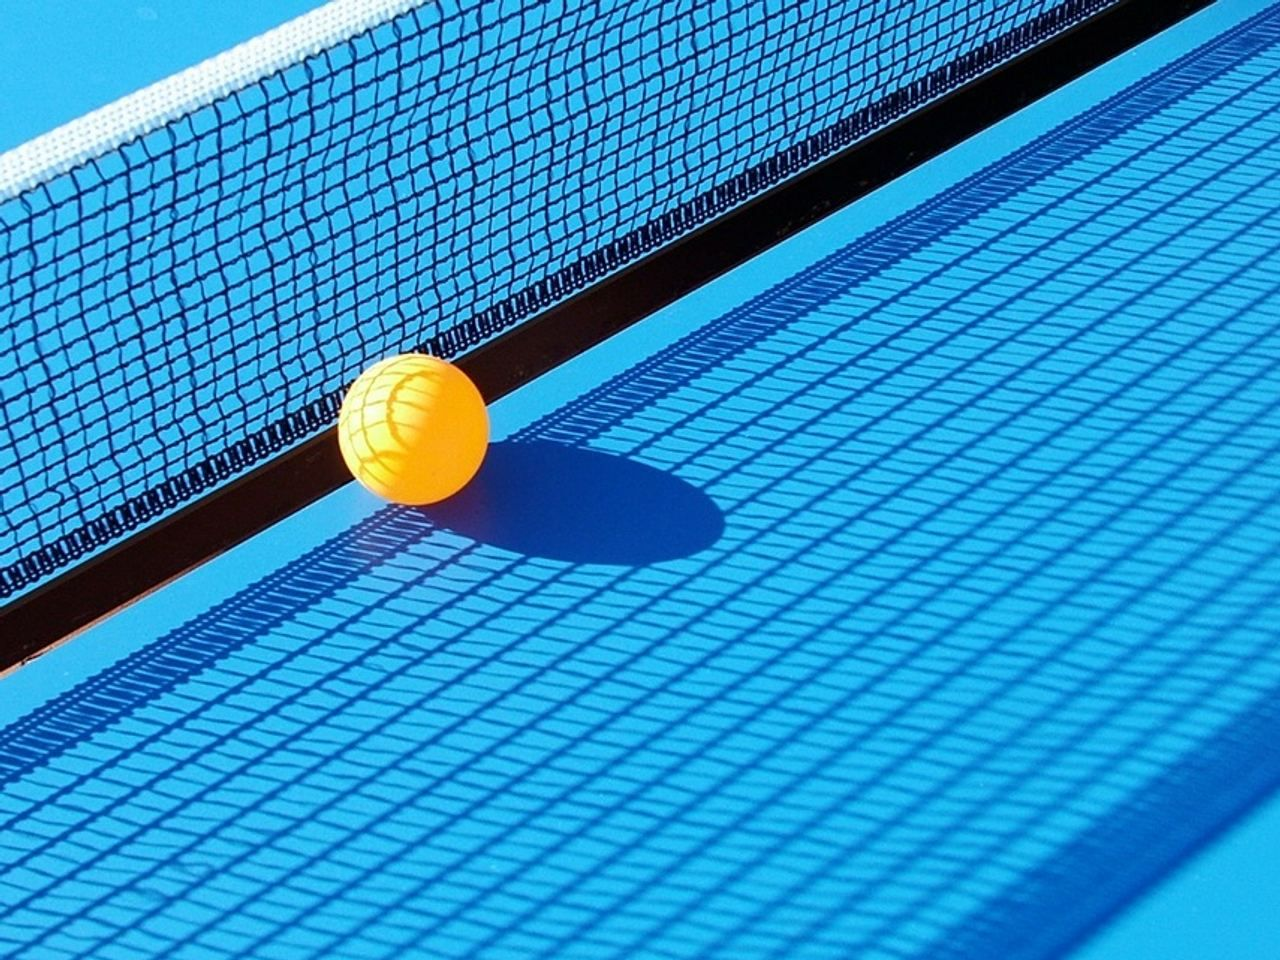 Table Tennis Wallpapers Hd Wallpapers Base Tennis Wallpaper Table Tennis Ping Pong